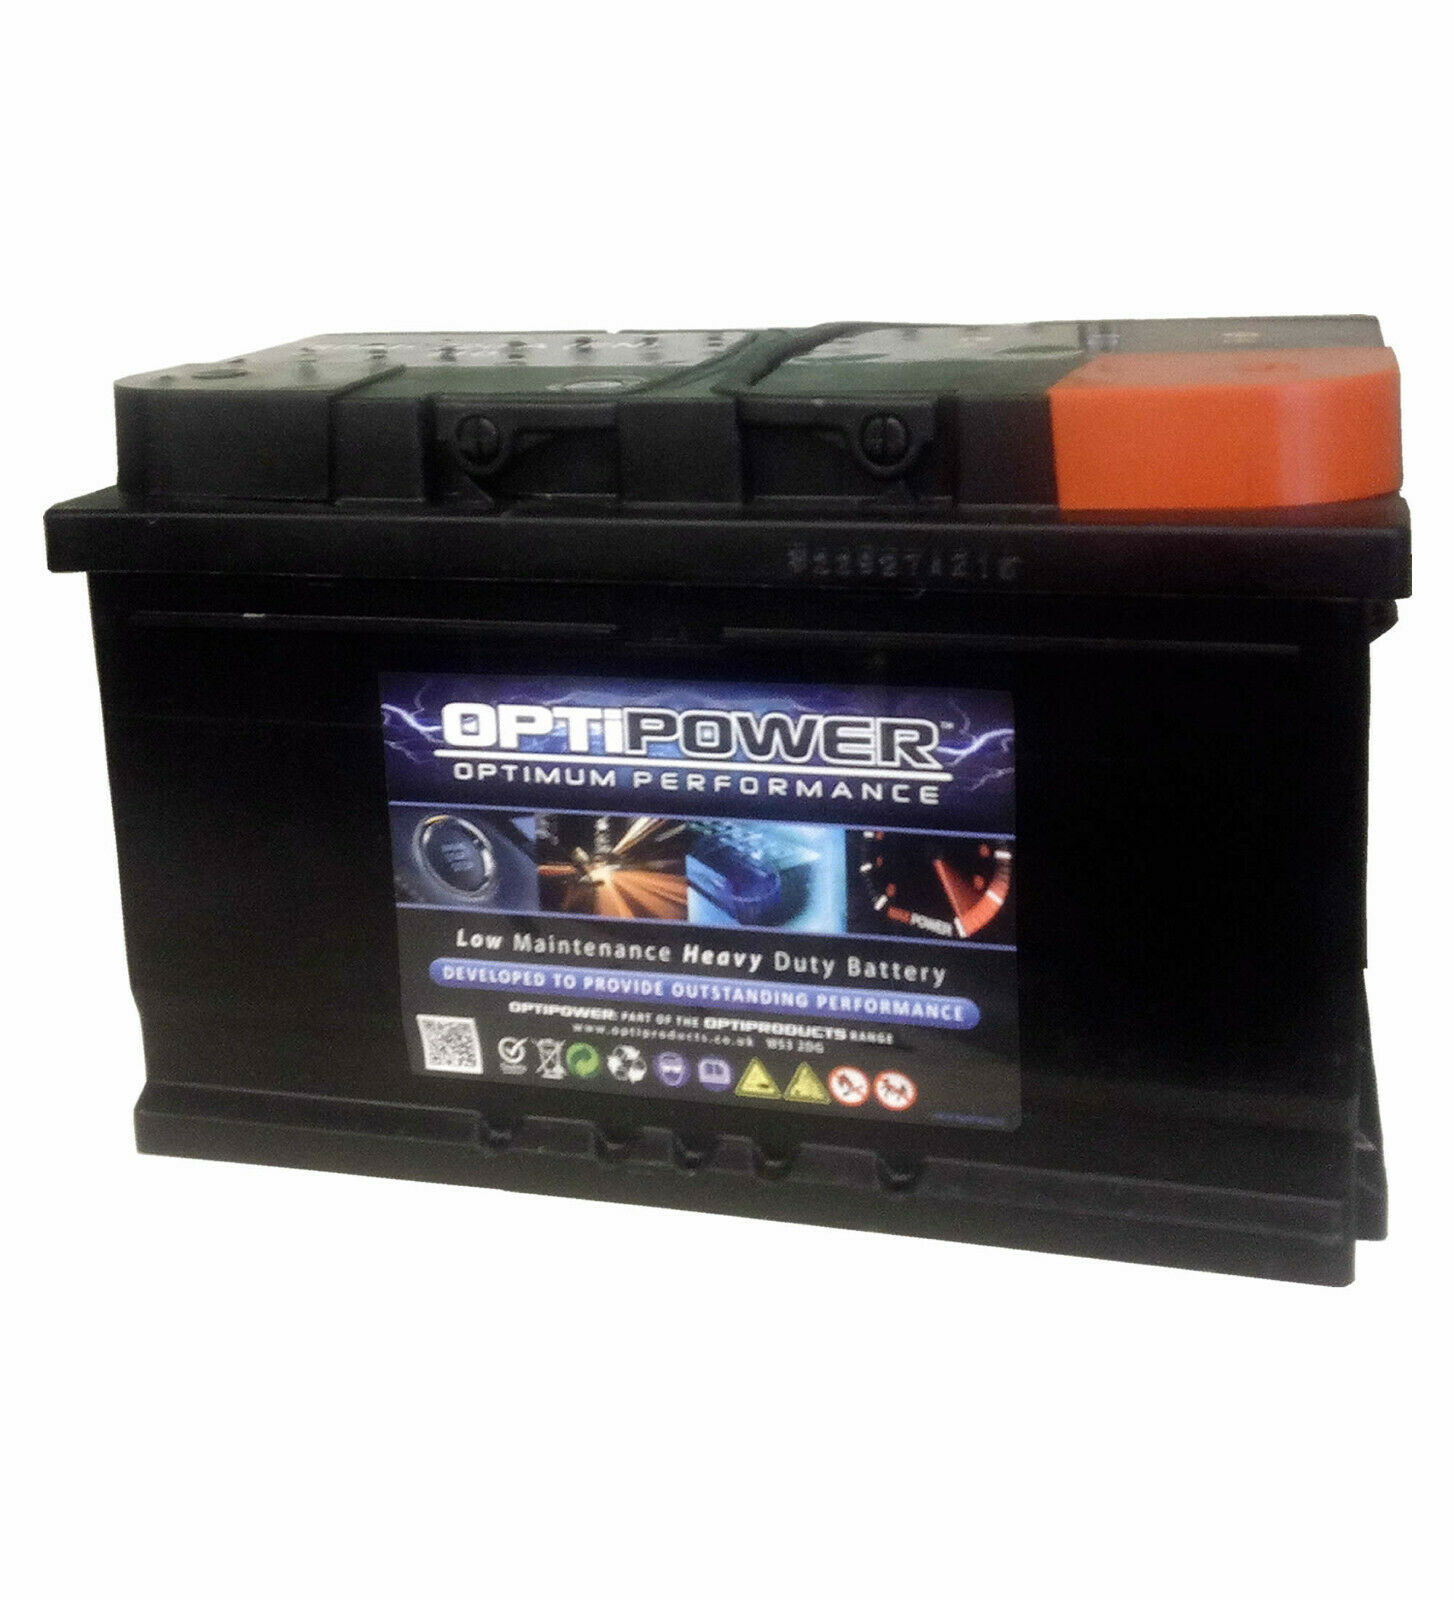 12V TYPE 110 CAR BATTERY 80 AH 720 CCA 2yr WARRANTY